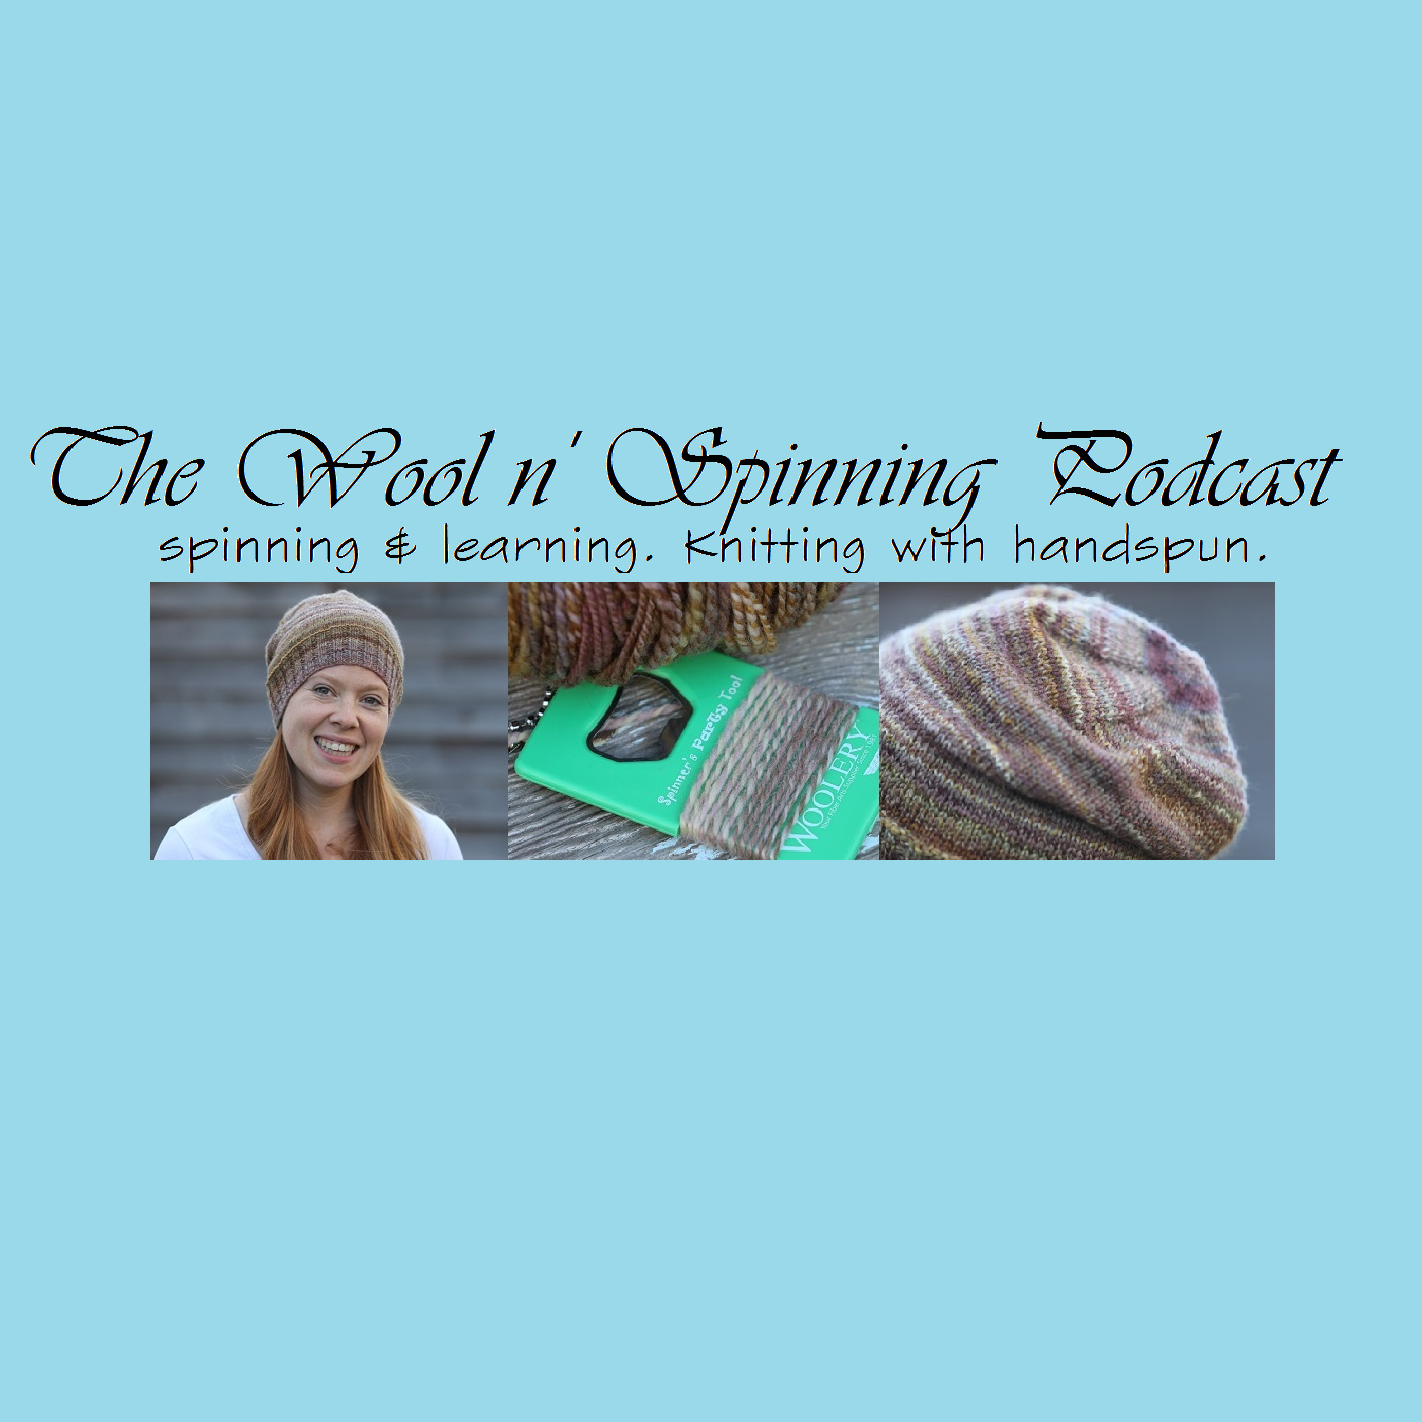 The Wool n' Spinning Podcast